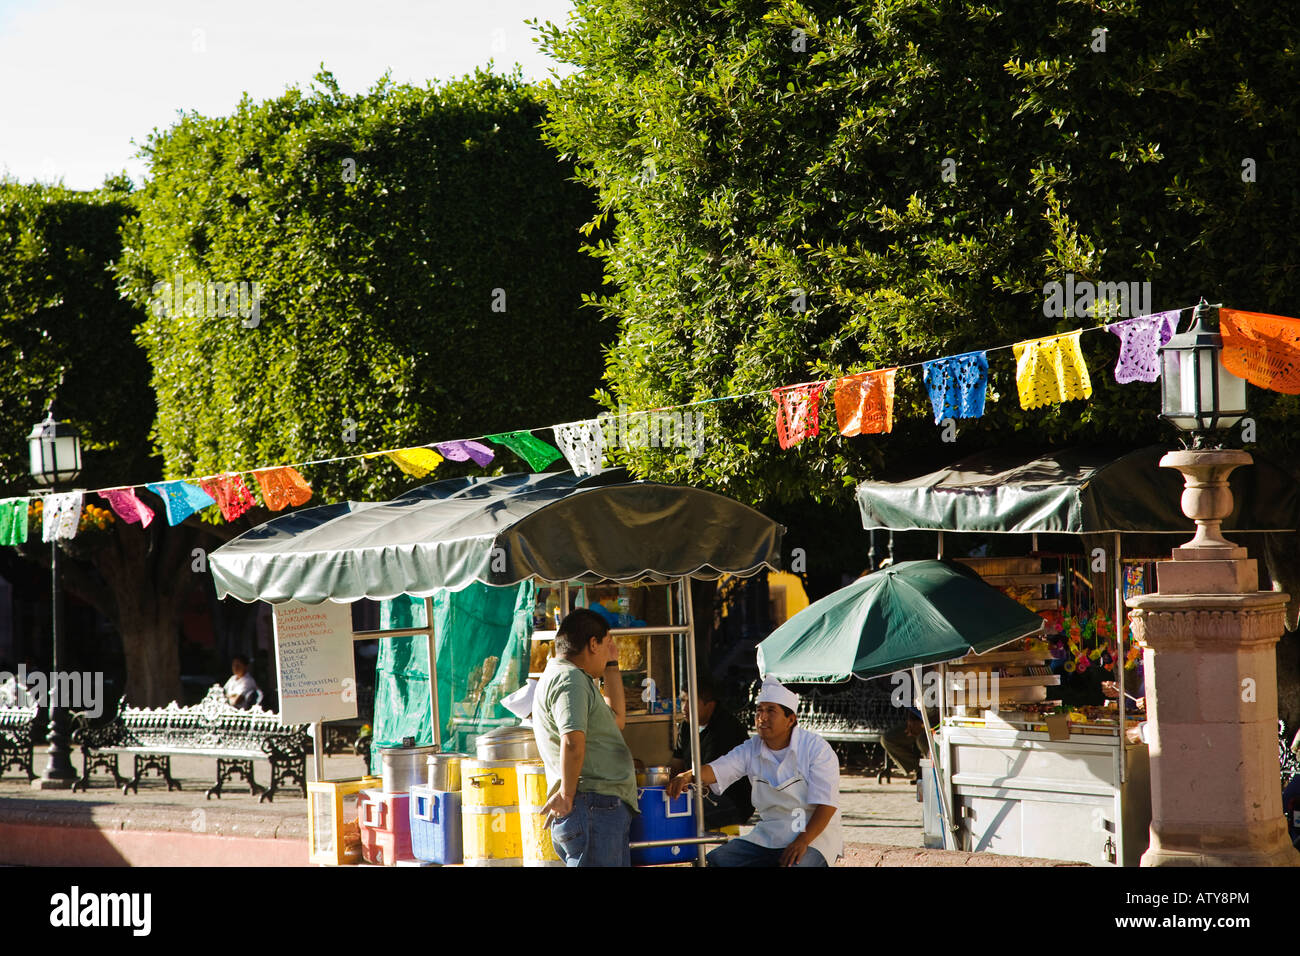 MEXICO San Miguel de Allende Cut out paper flags decorate plaza around El Jardin street vendors selling food and - Stock Image